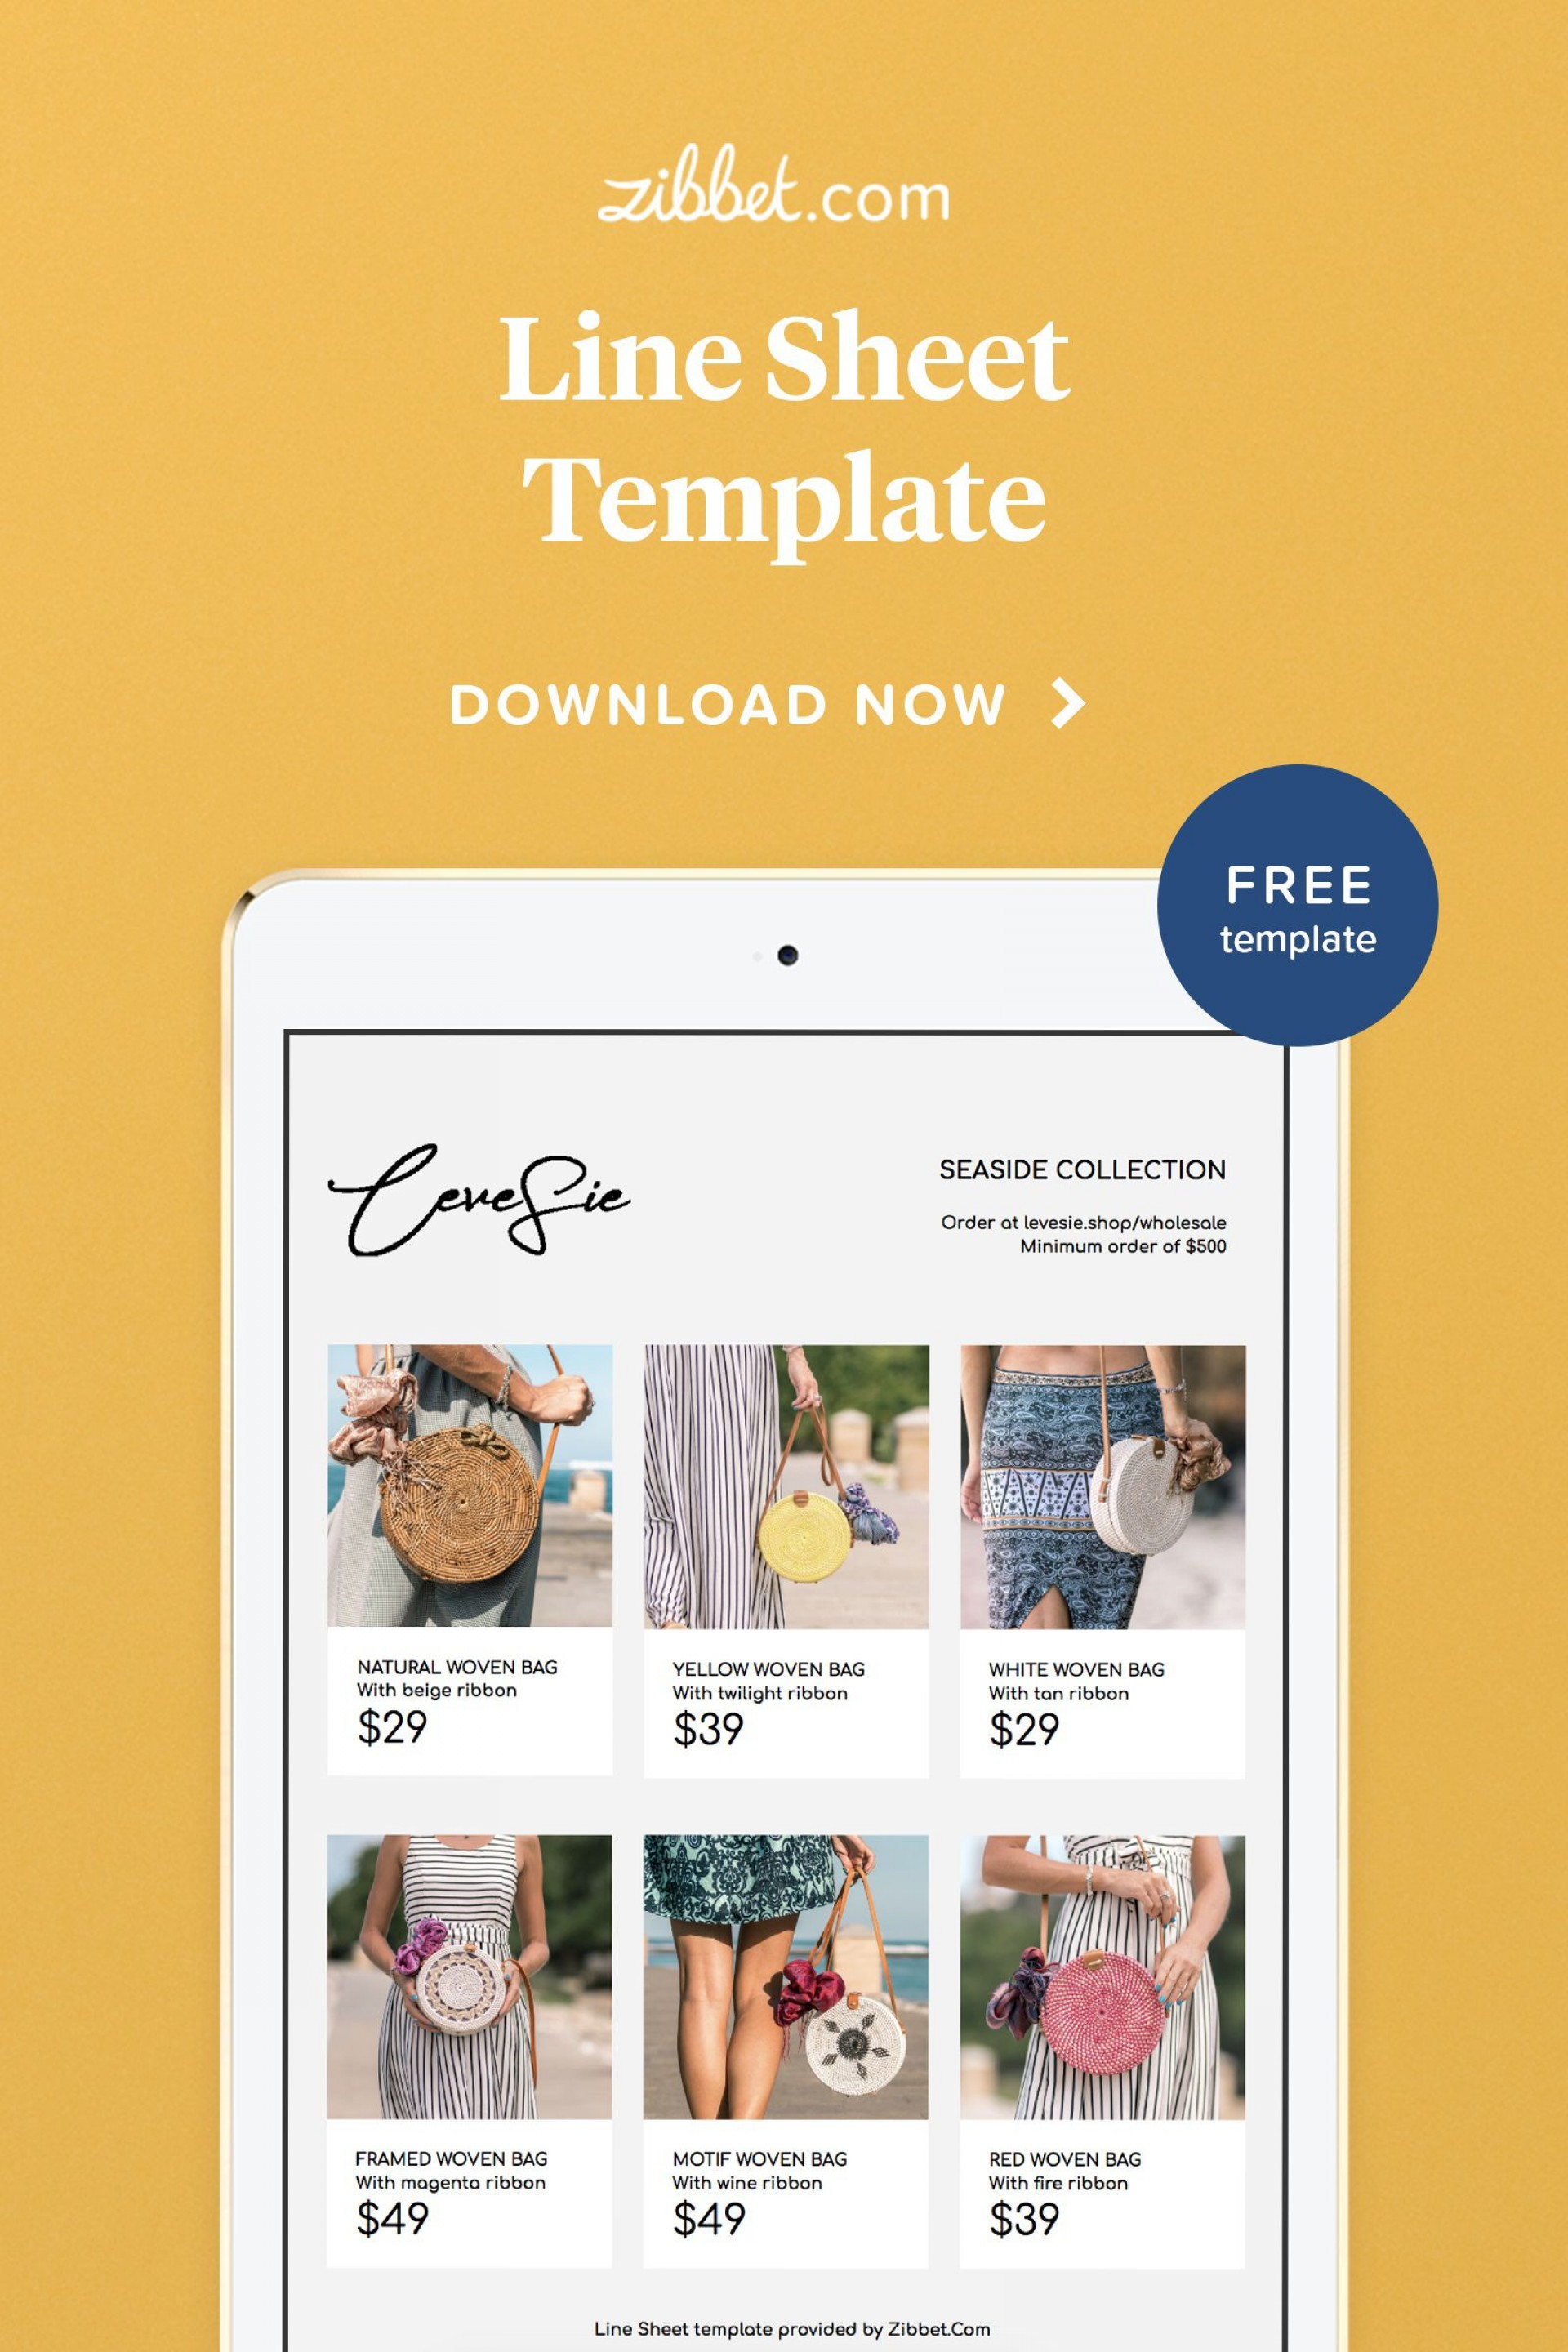 009 Staggering Wholesale Line Sheet Template Image  Excel1920